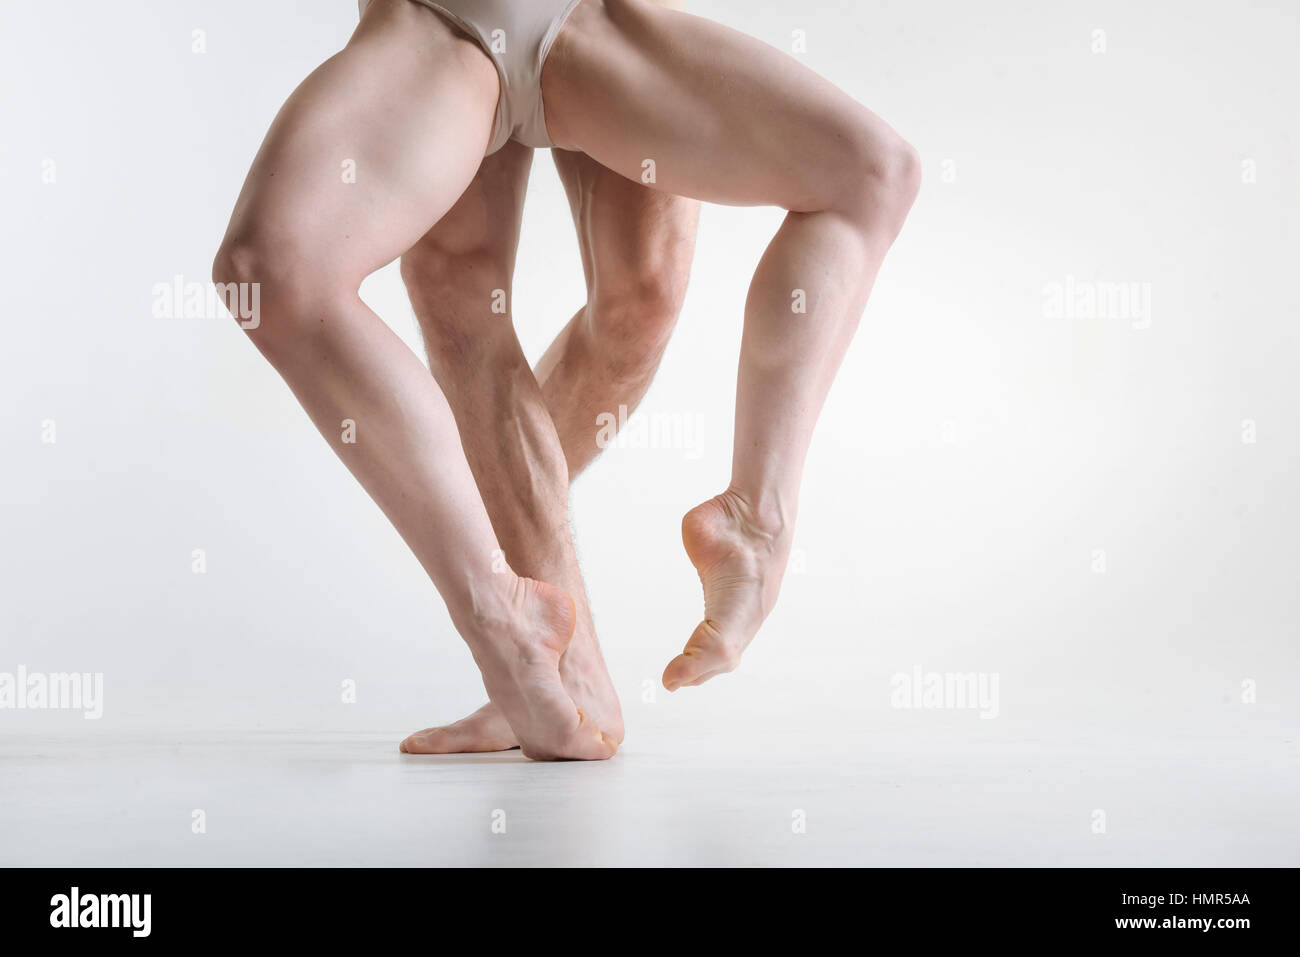 Sportive athletes legs located in the white colored room - Stock Image